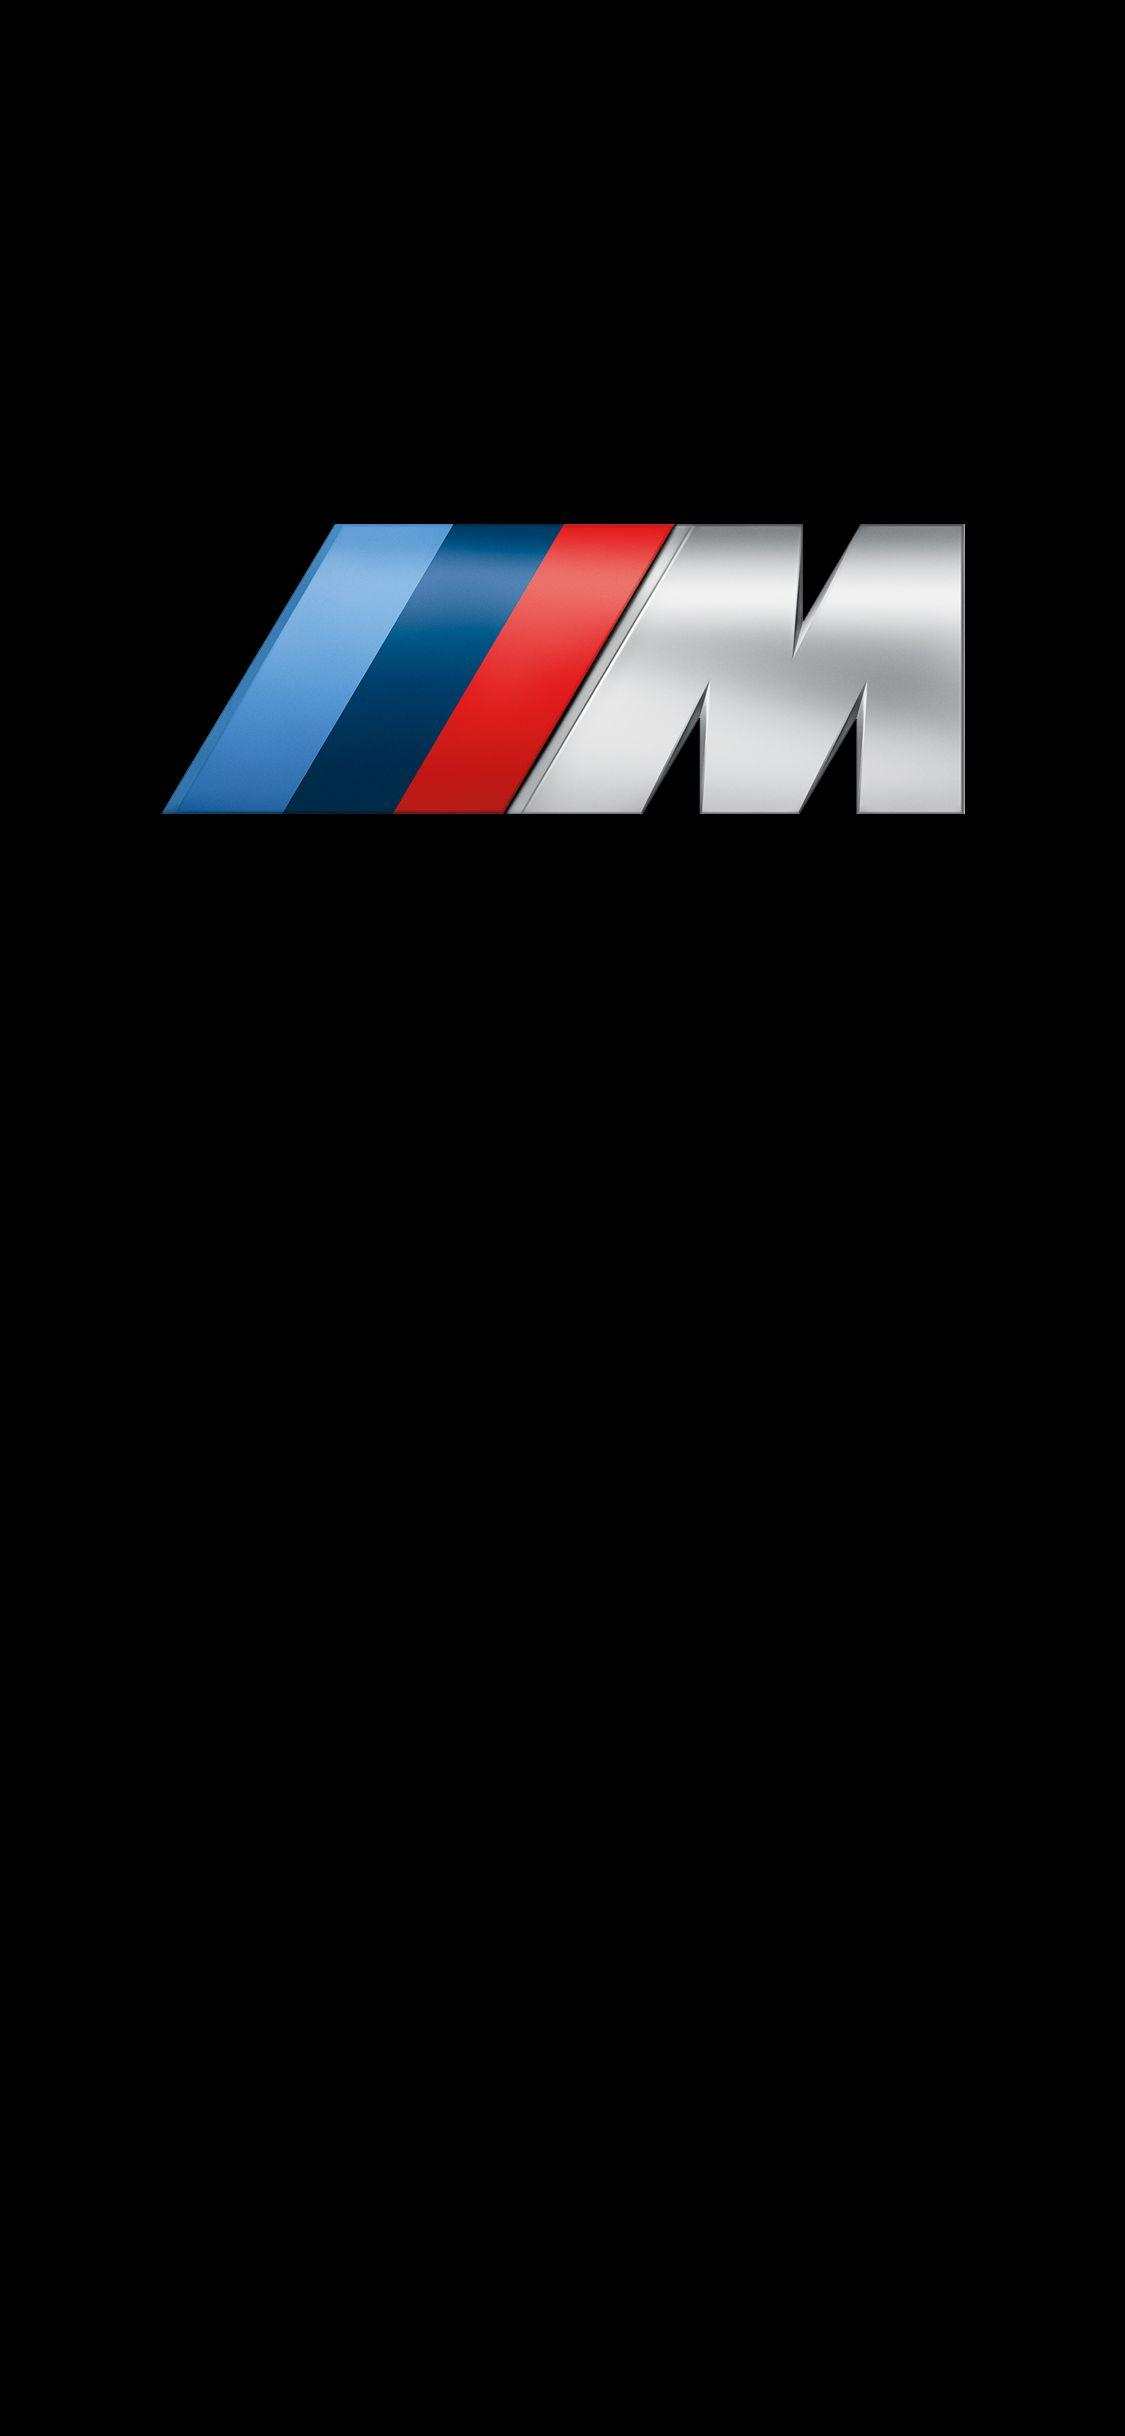 Logo Bmw Amg Iphone Wallpapers Wallpaper Cave